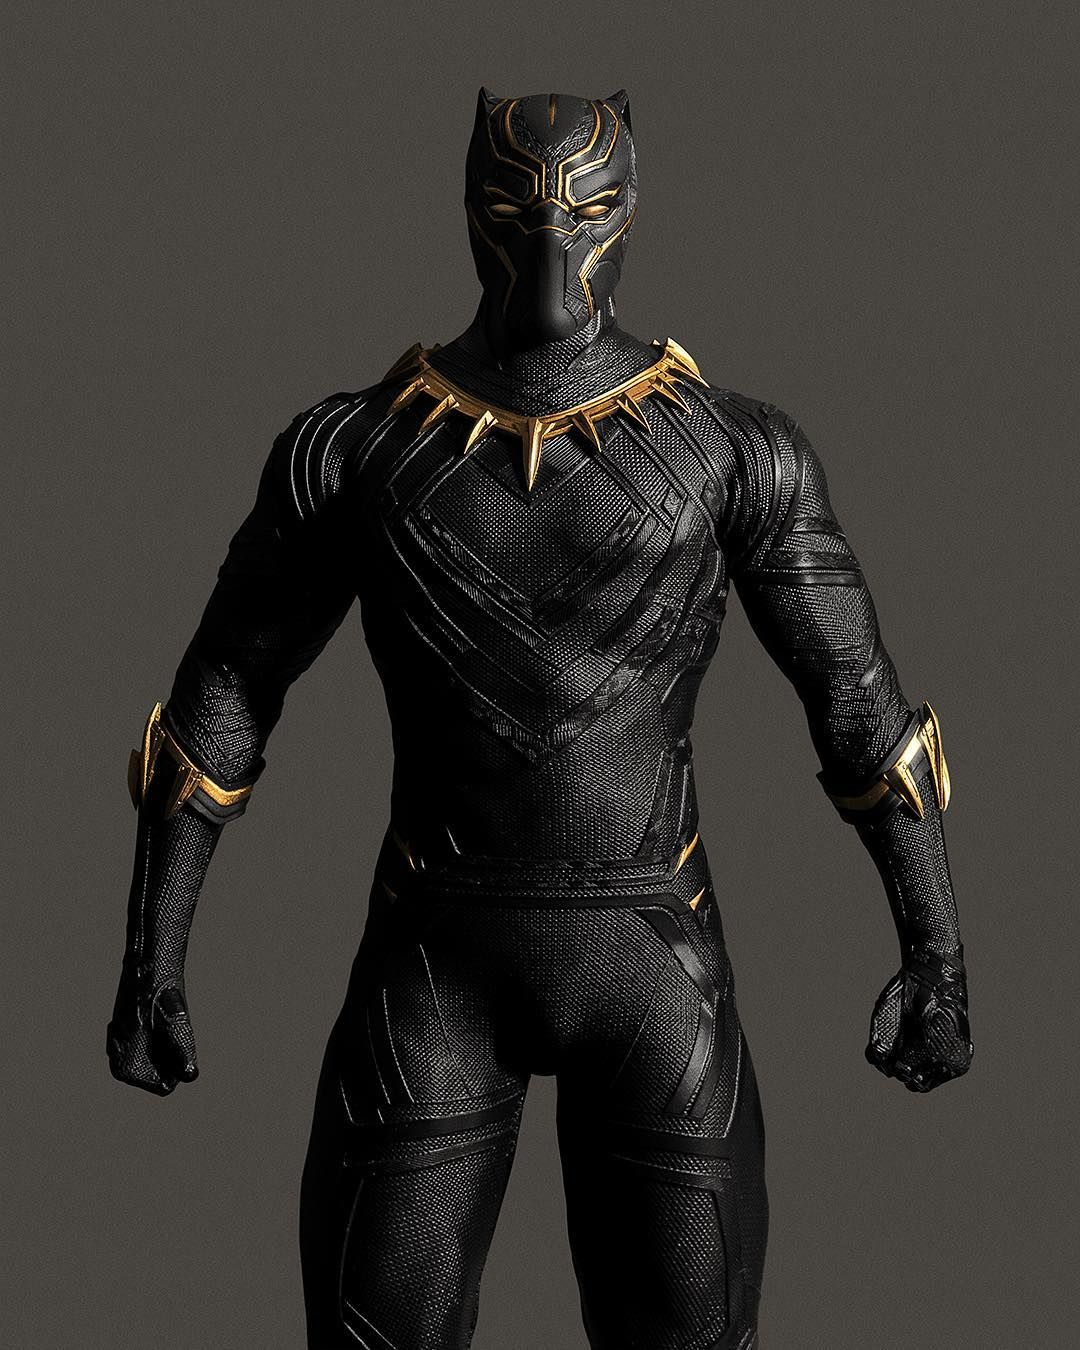 Modified Action Figure Makes The Black Panther Suit Look Even Better Black Panther Costume Black Panther Marvel Black Panther Images